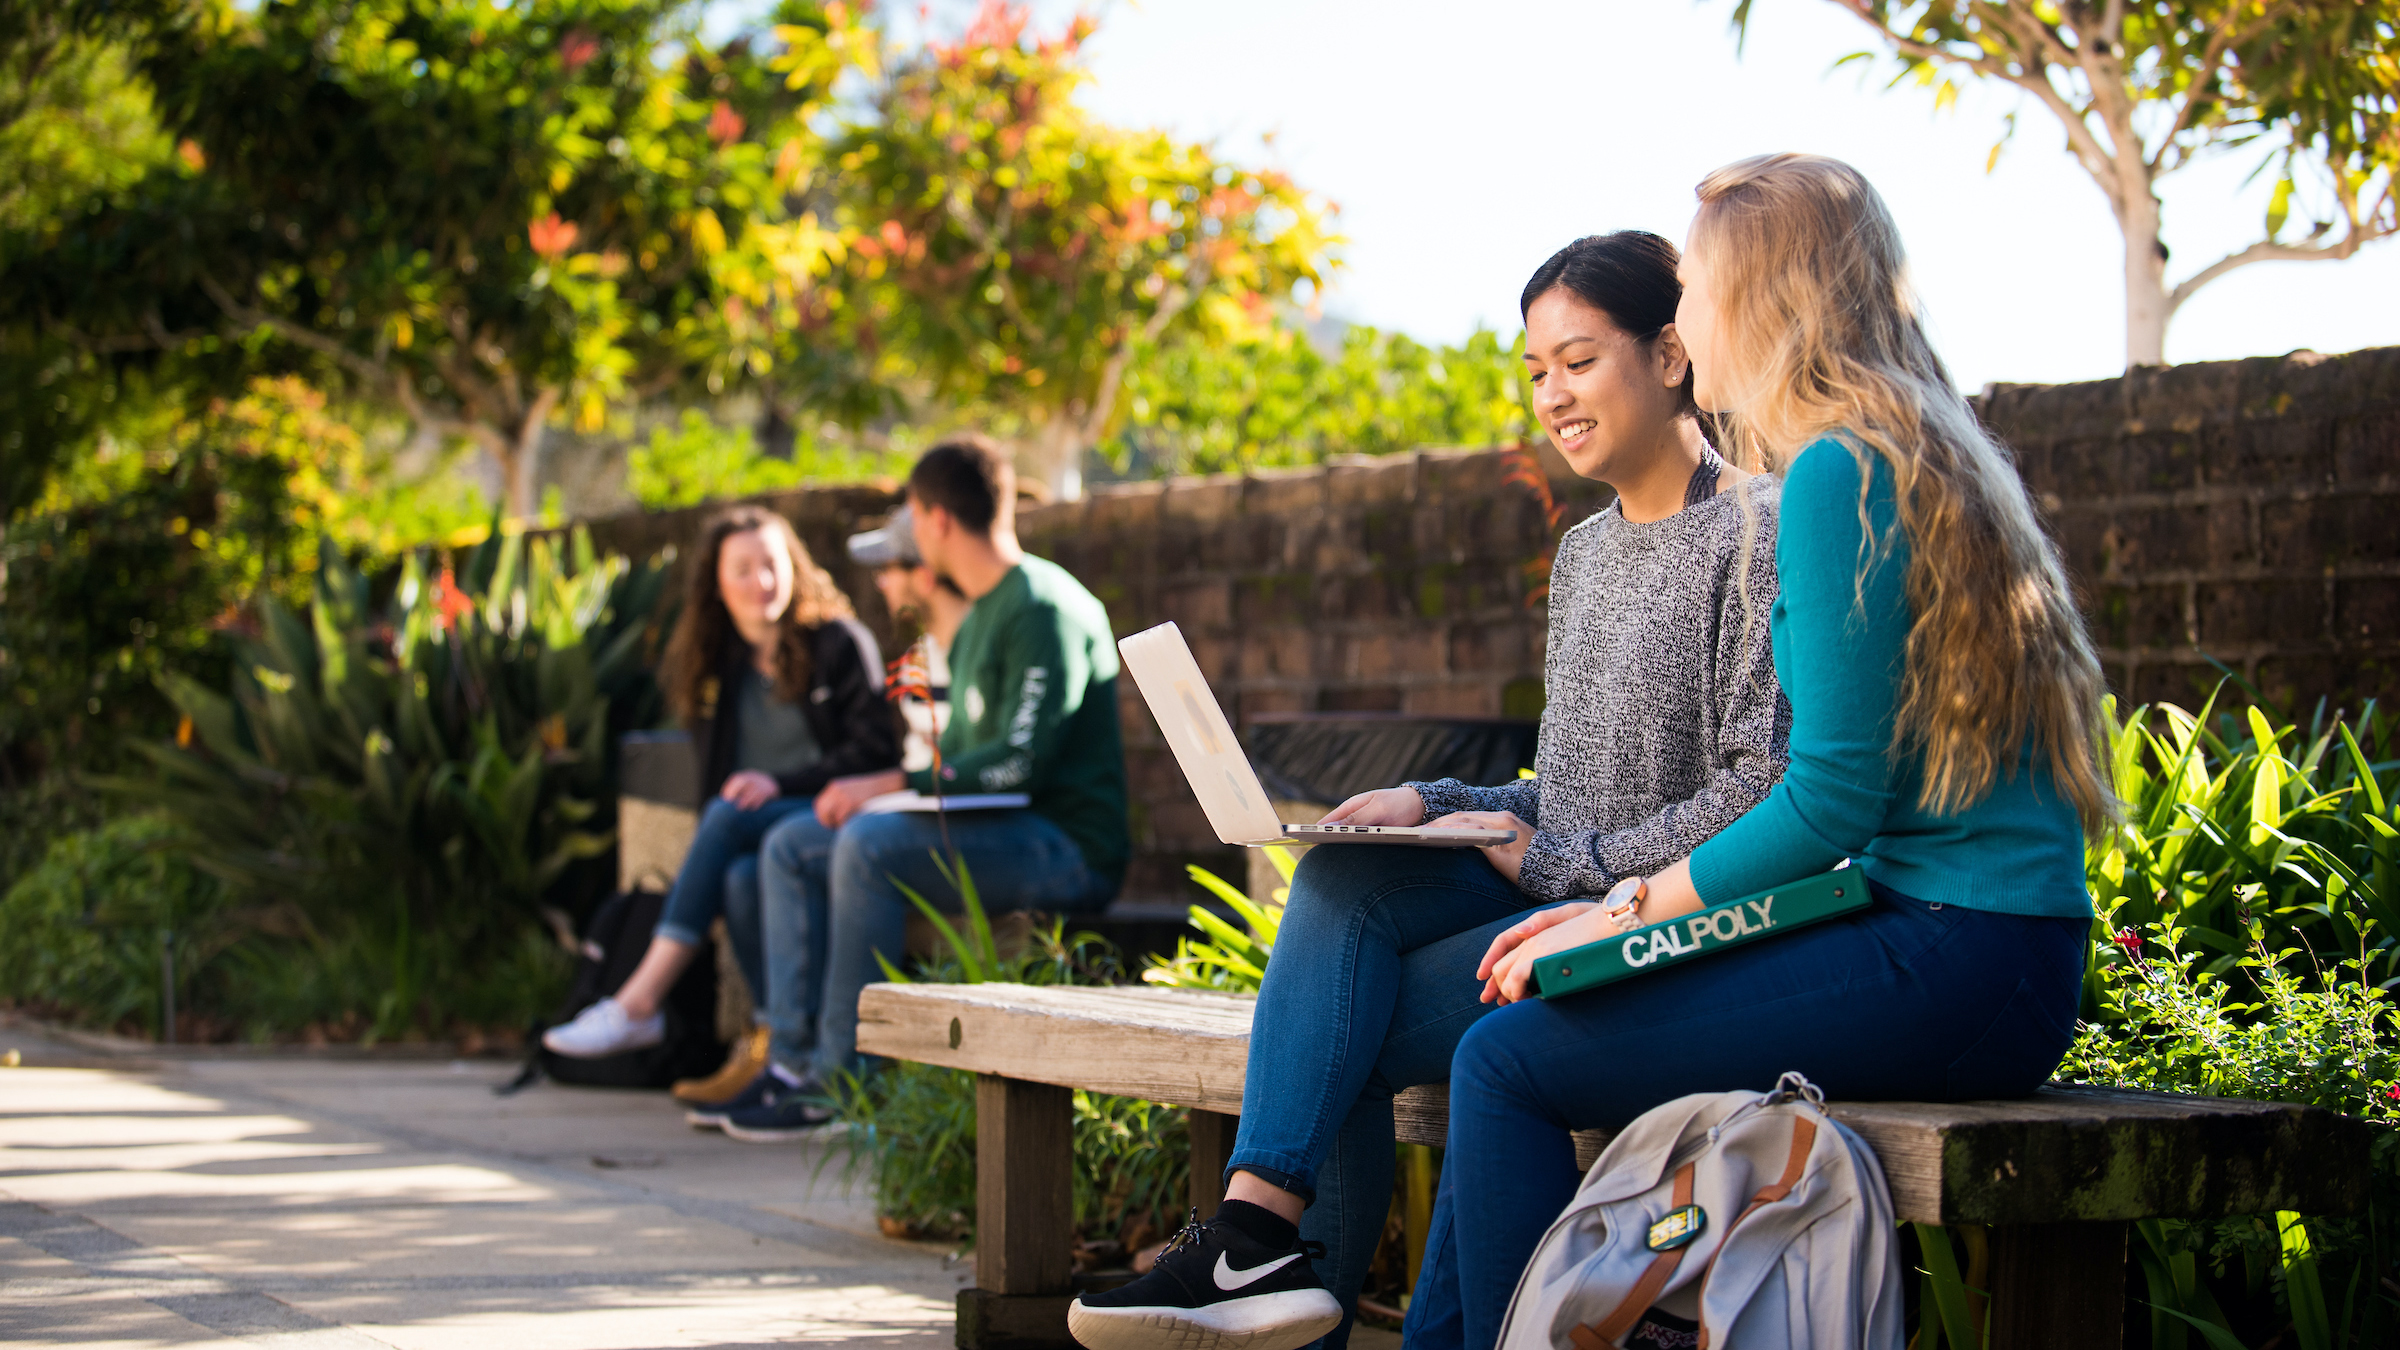 students on a bench on campus looking at a laptop